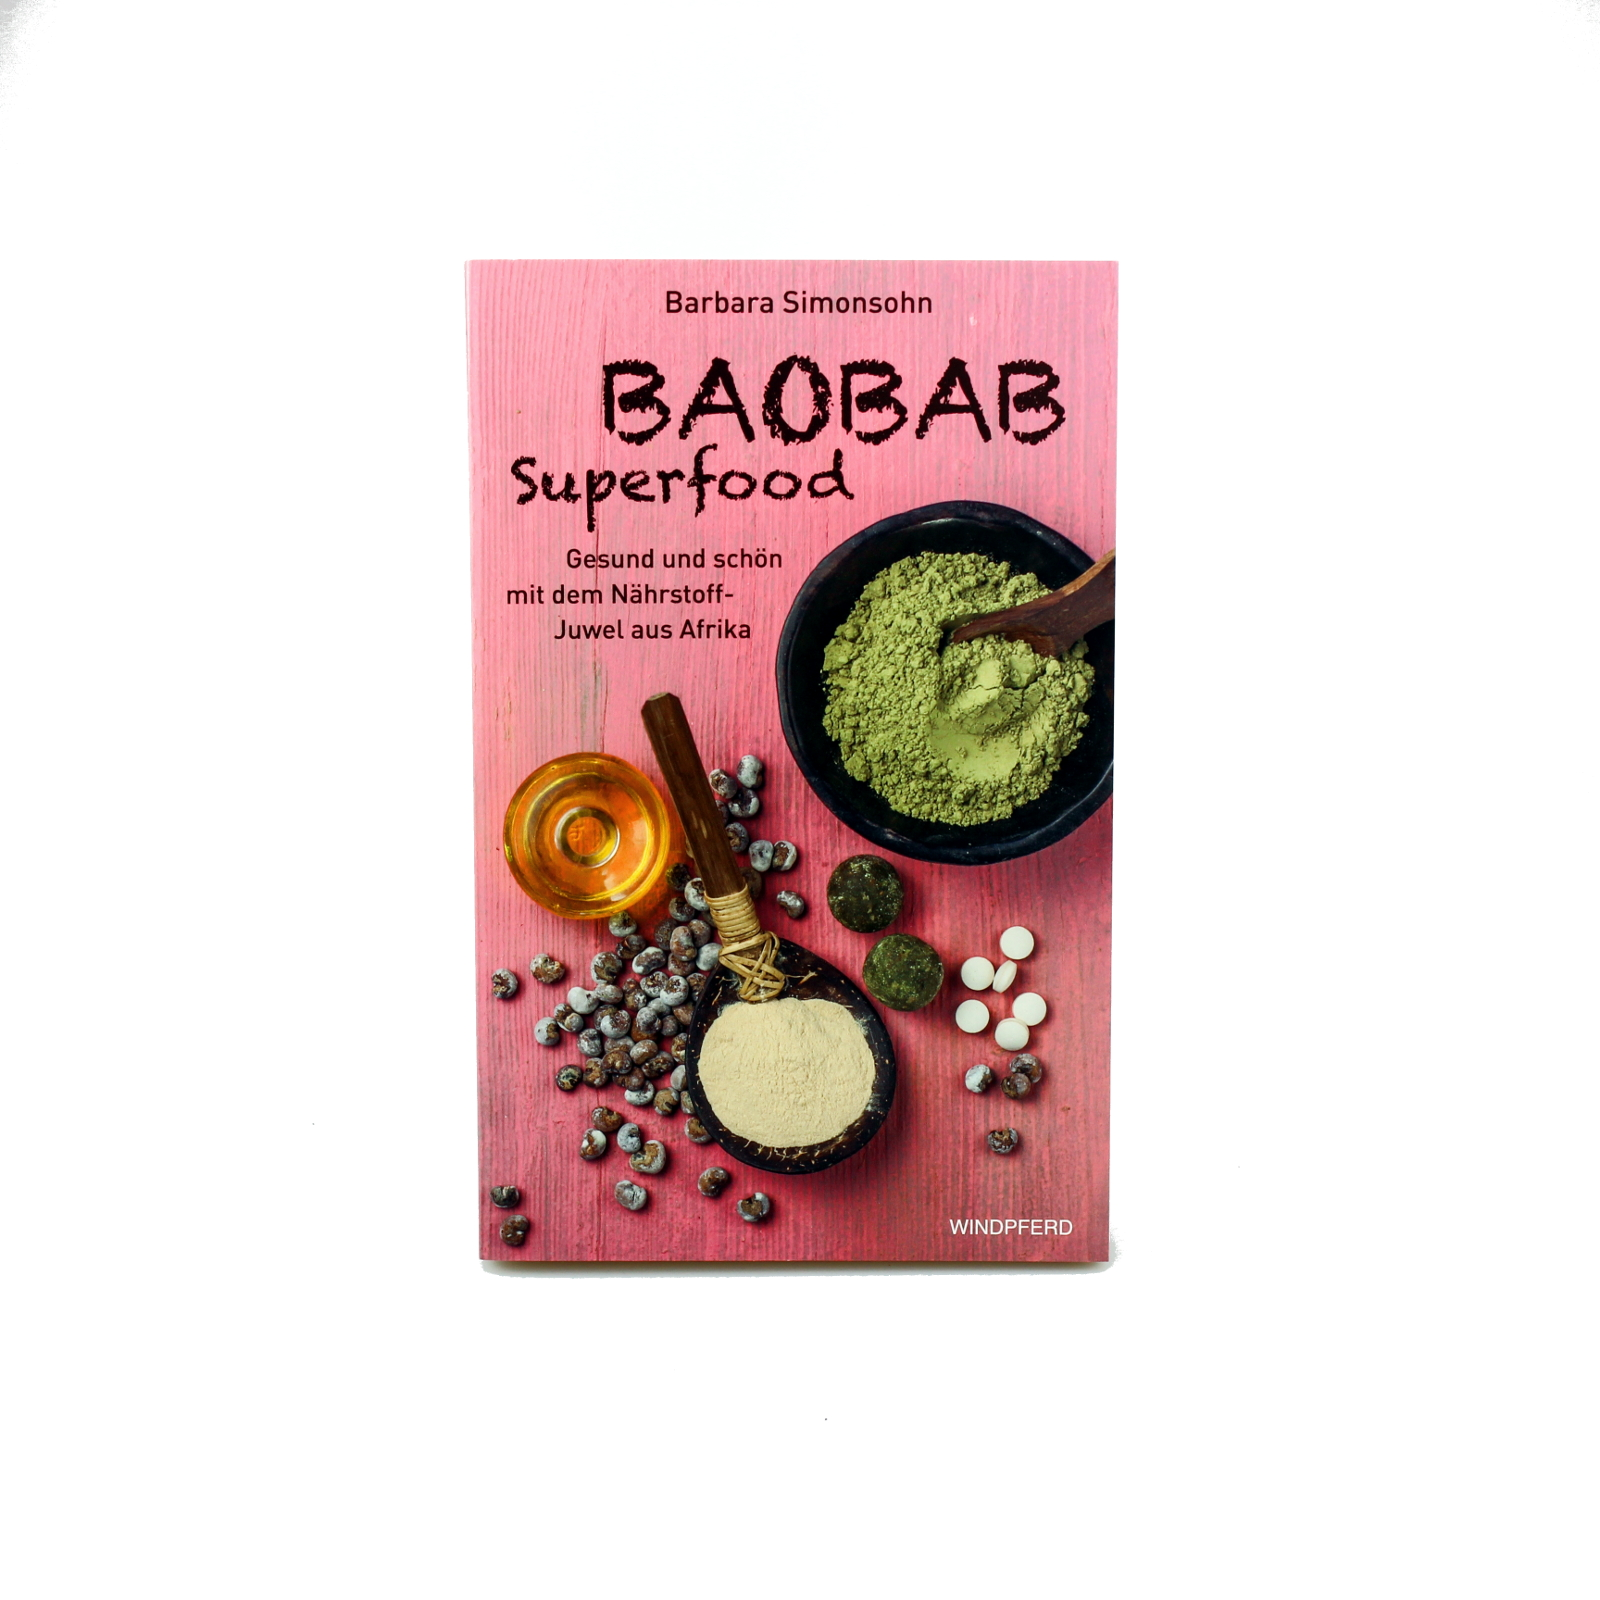 Baobab Superfood - Buch Image